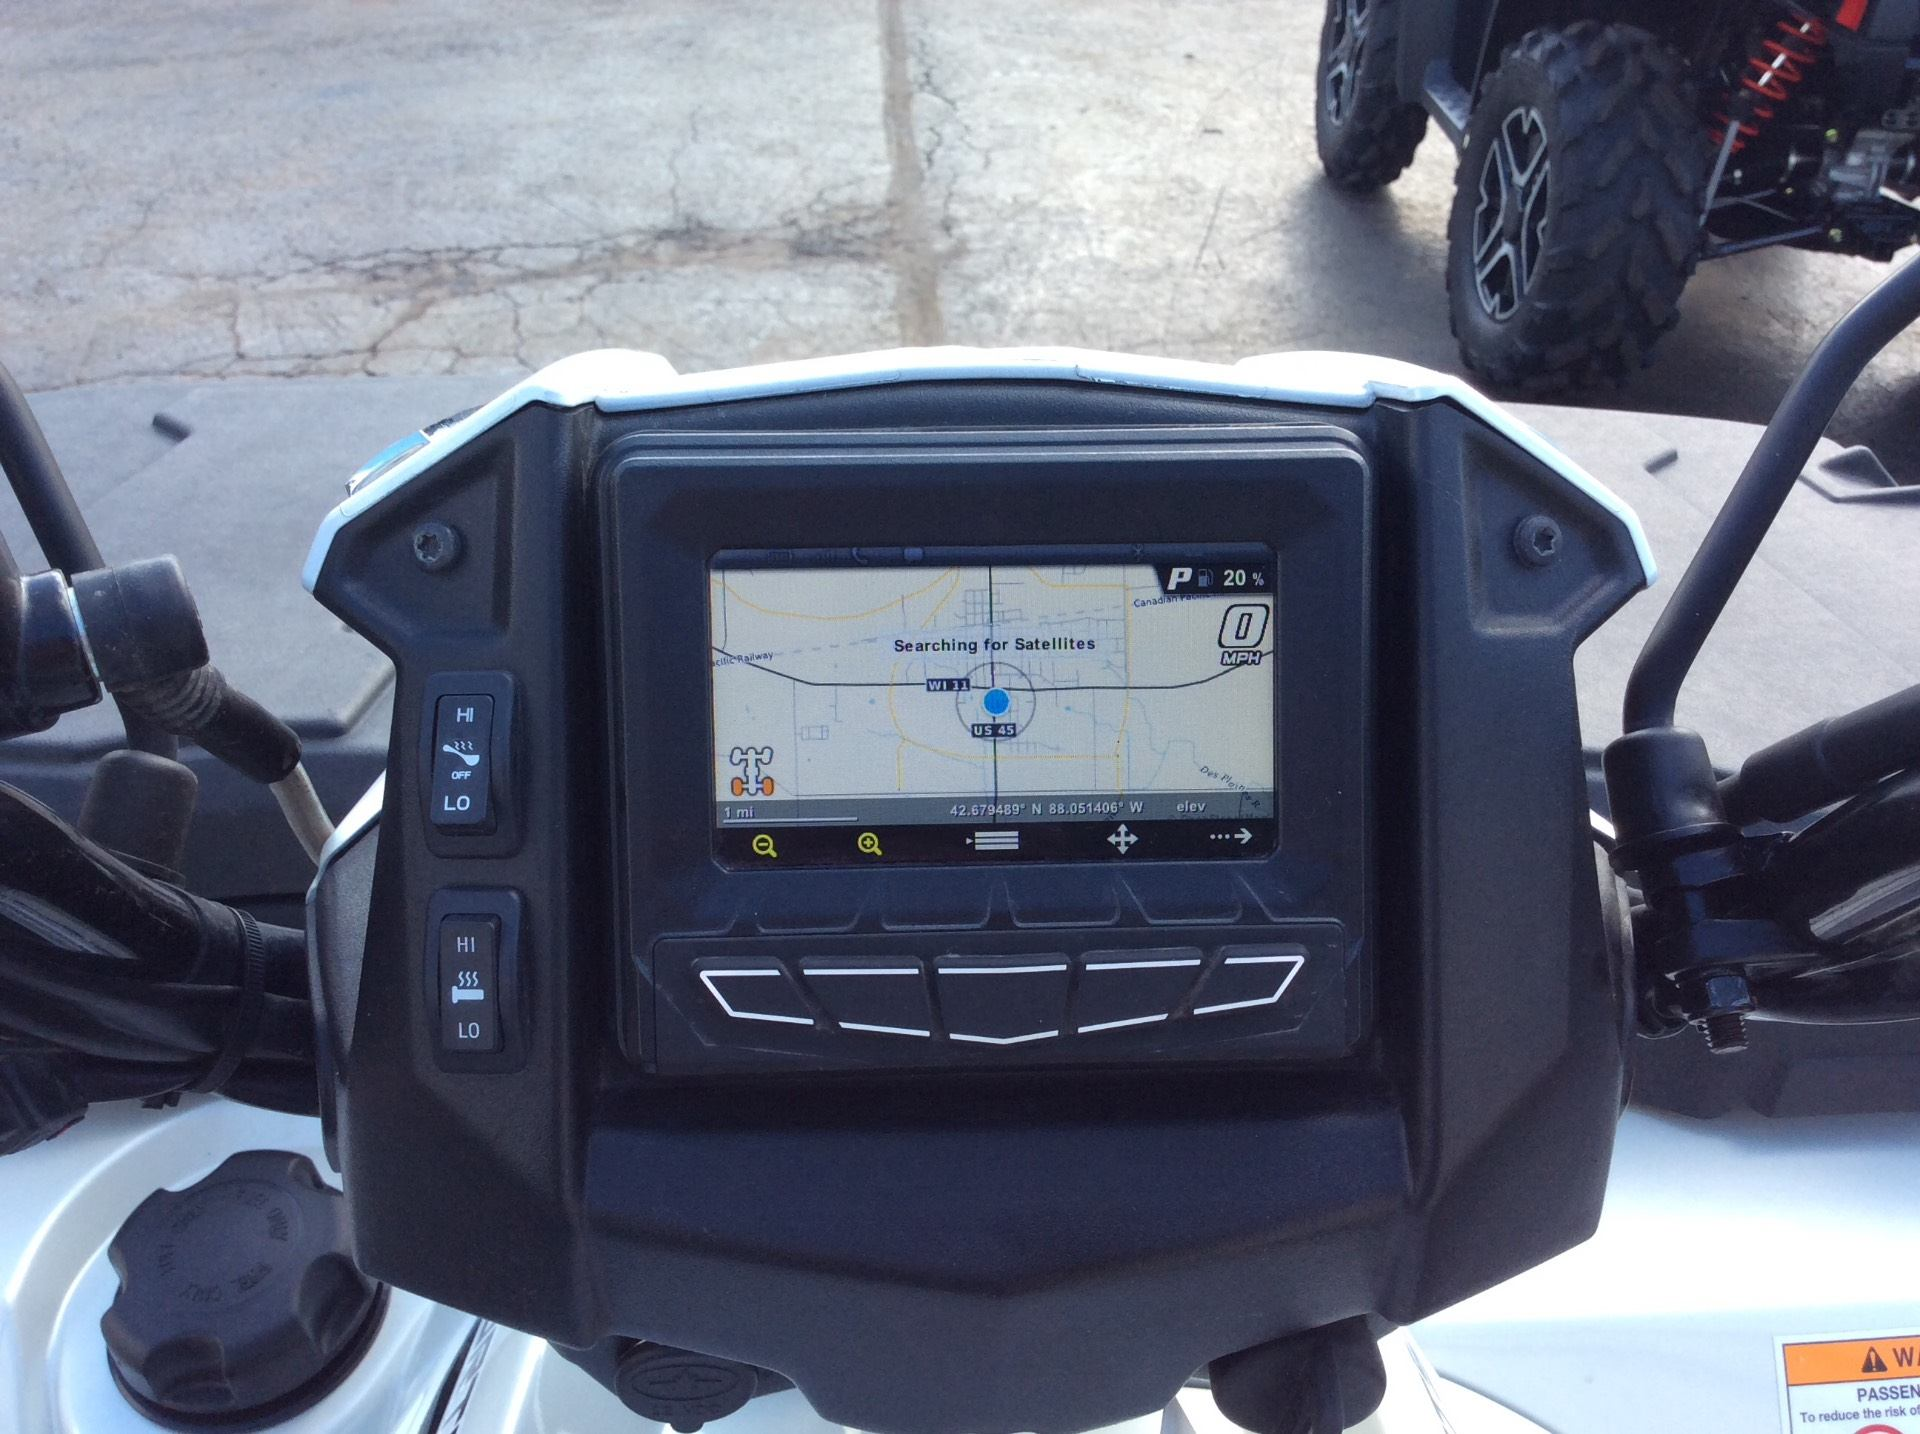 2015 Polaris Sportsman® Touring XP 1000 in Union Grove, Wisconsin - Photo 6